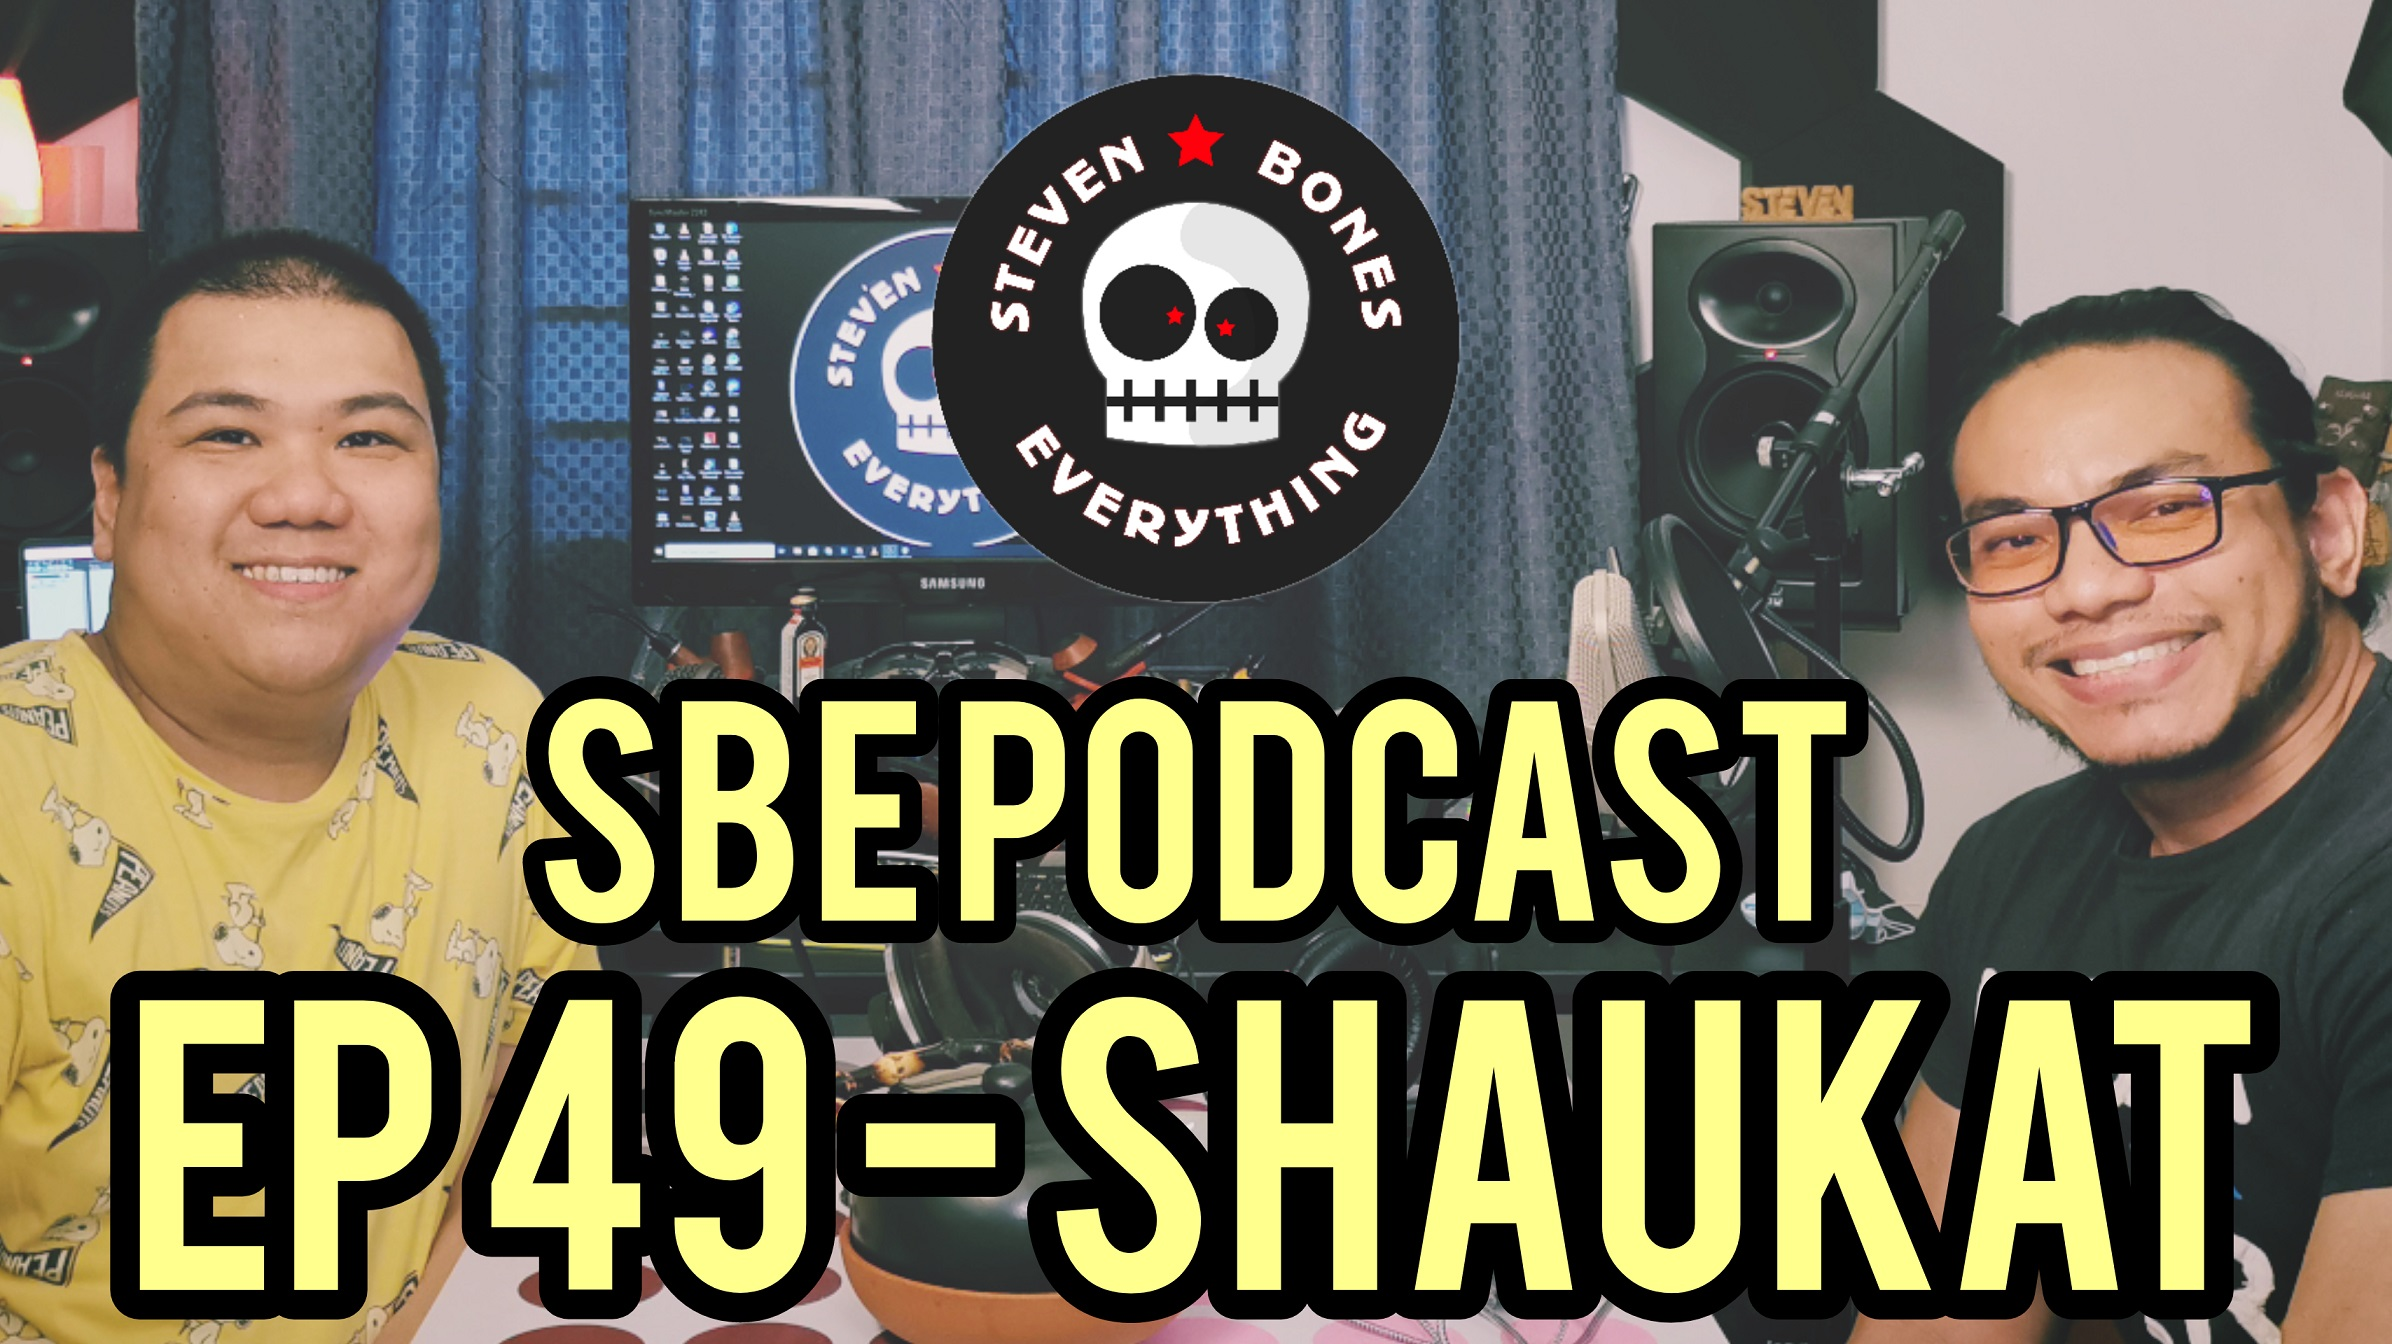 SBE Podcast EP49 - SHAUKAT